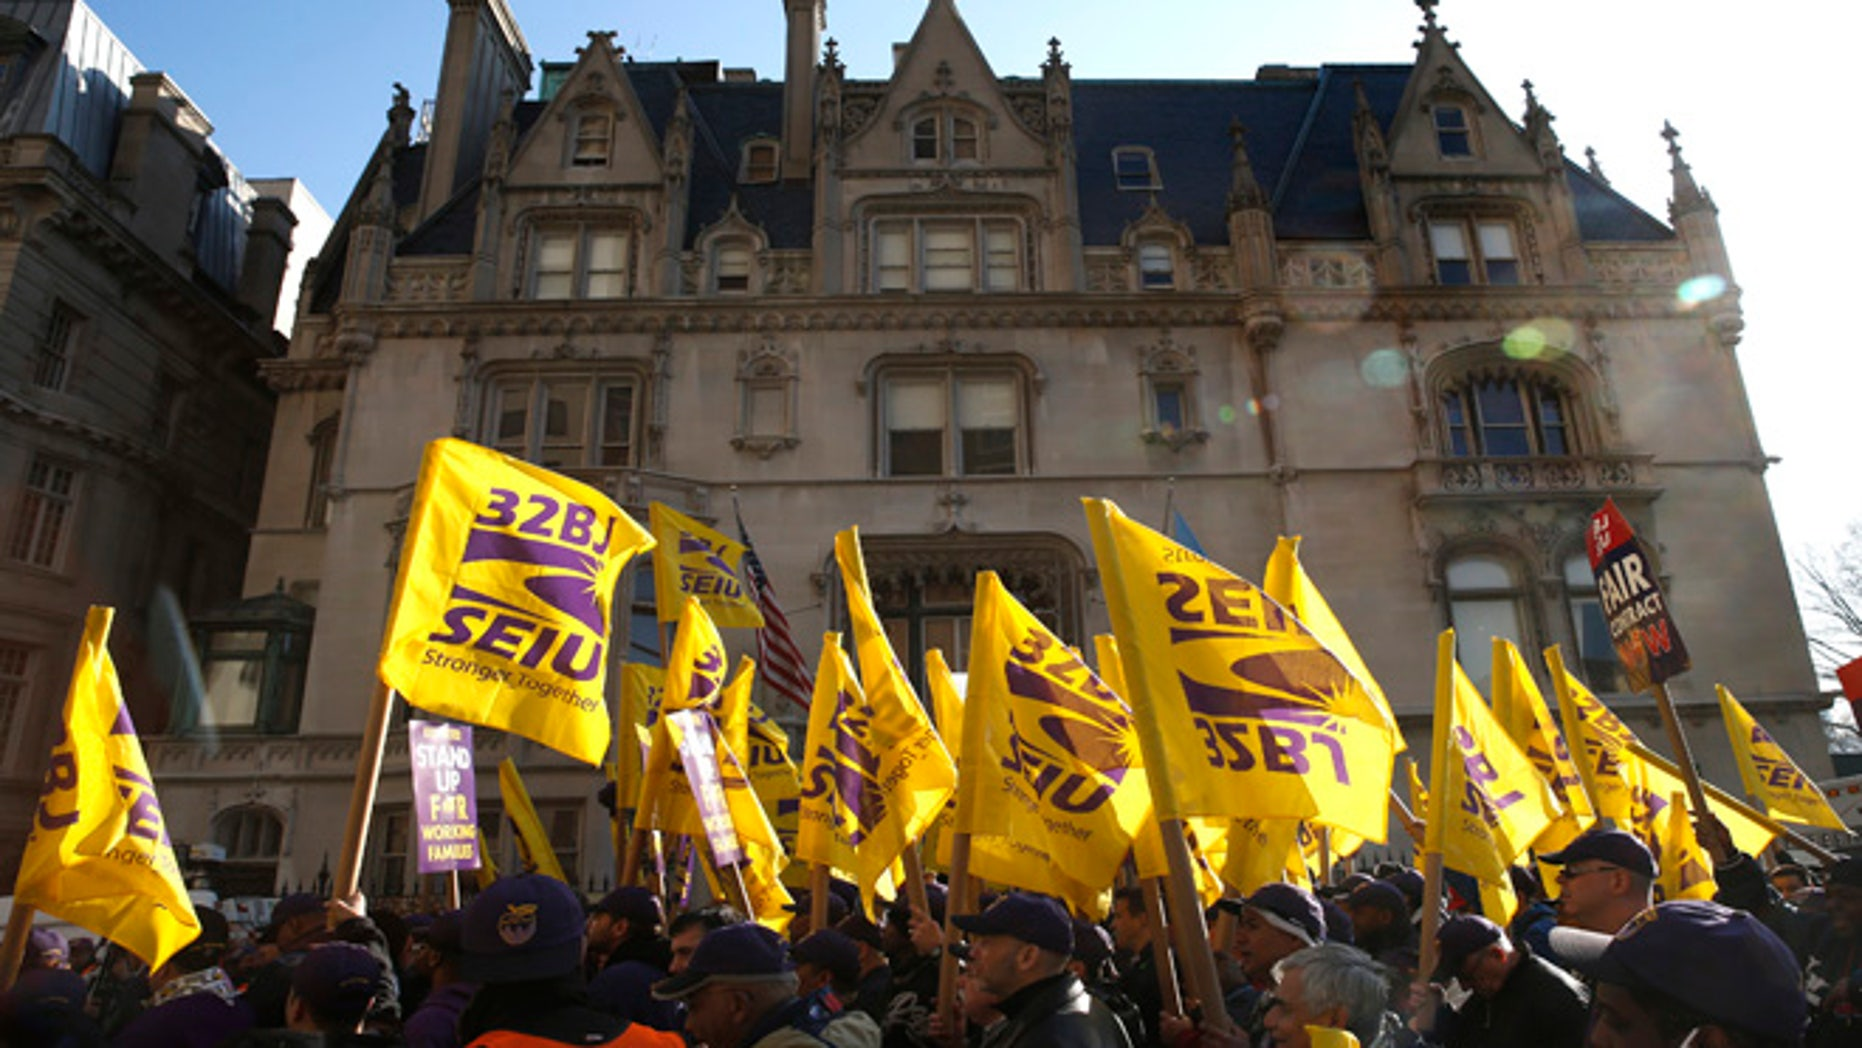 Members of the Service Employees International Union (SEIU) march during a protest in support of a new contract for apartment building workers in New York City, April 2, 2014.